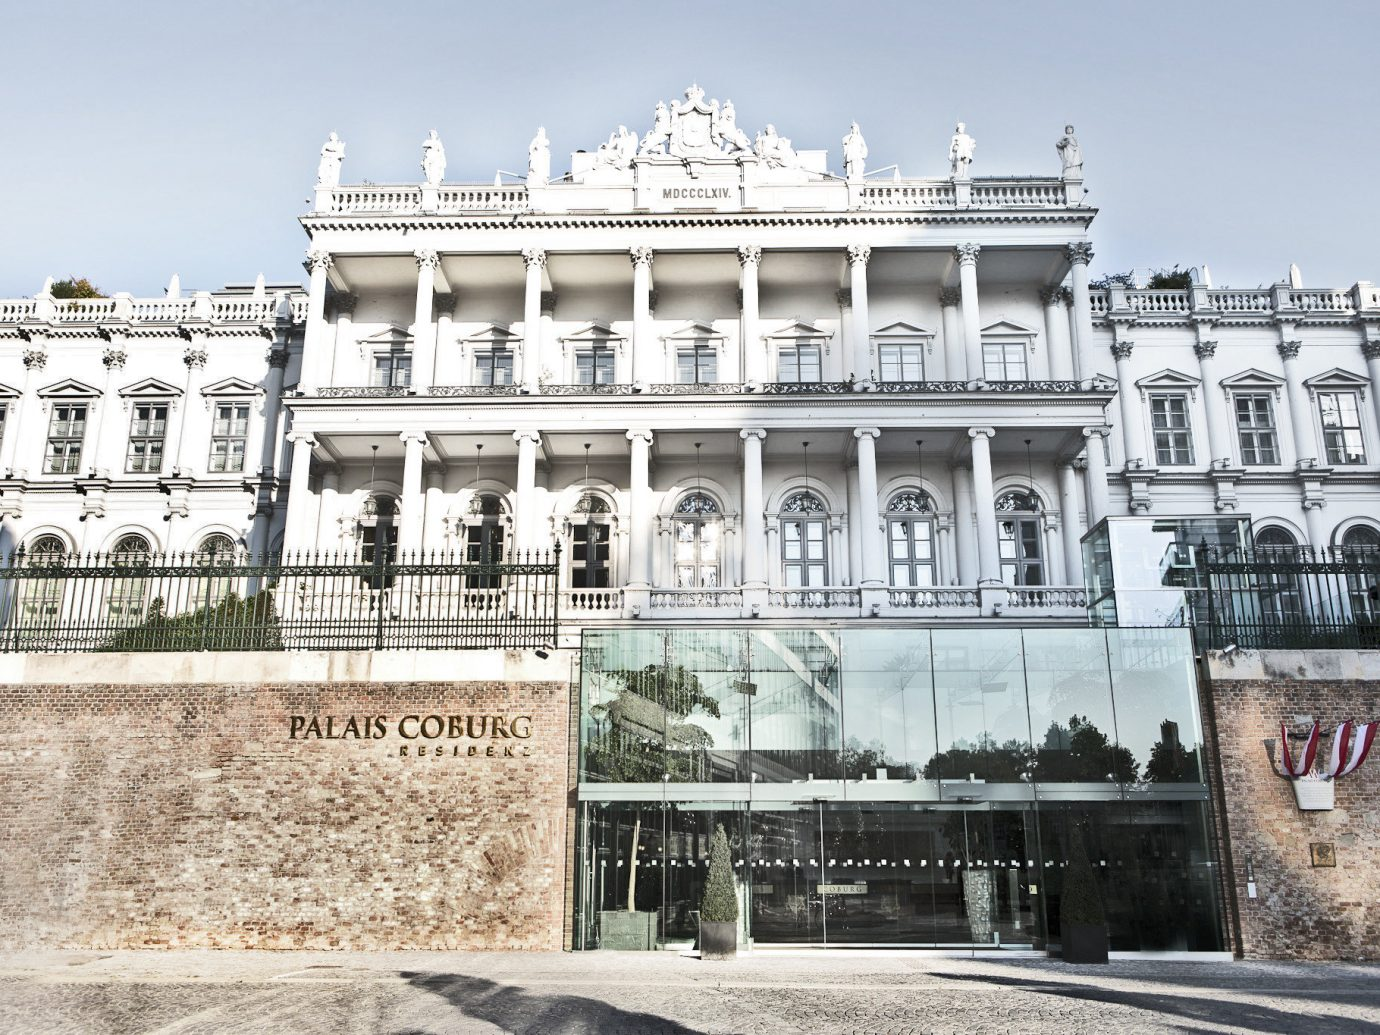 Austria europe Hotels Vienna landmark building classical architecture palace facade history plaza City window town square